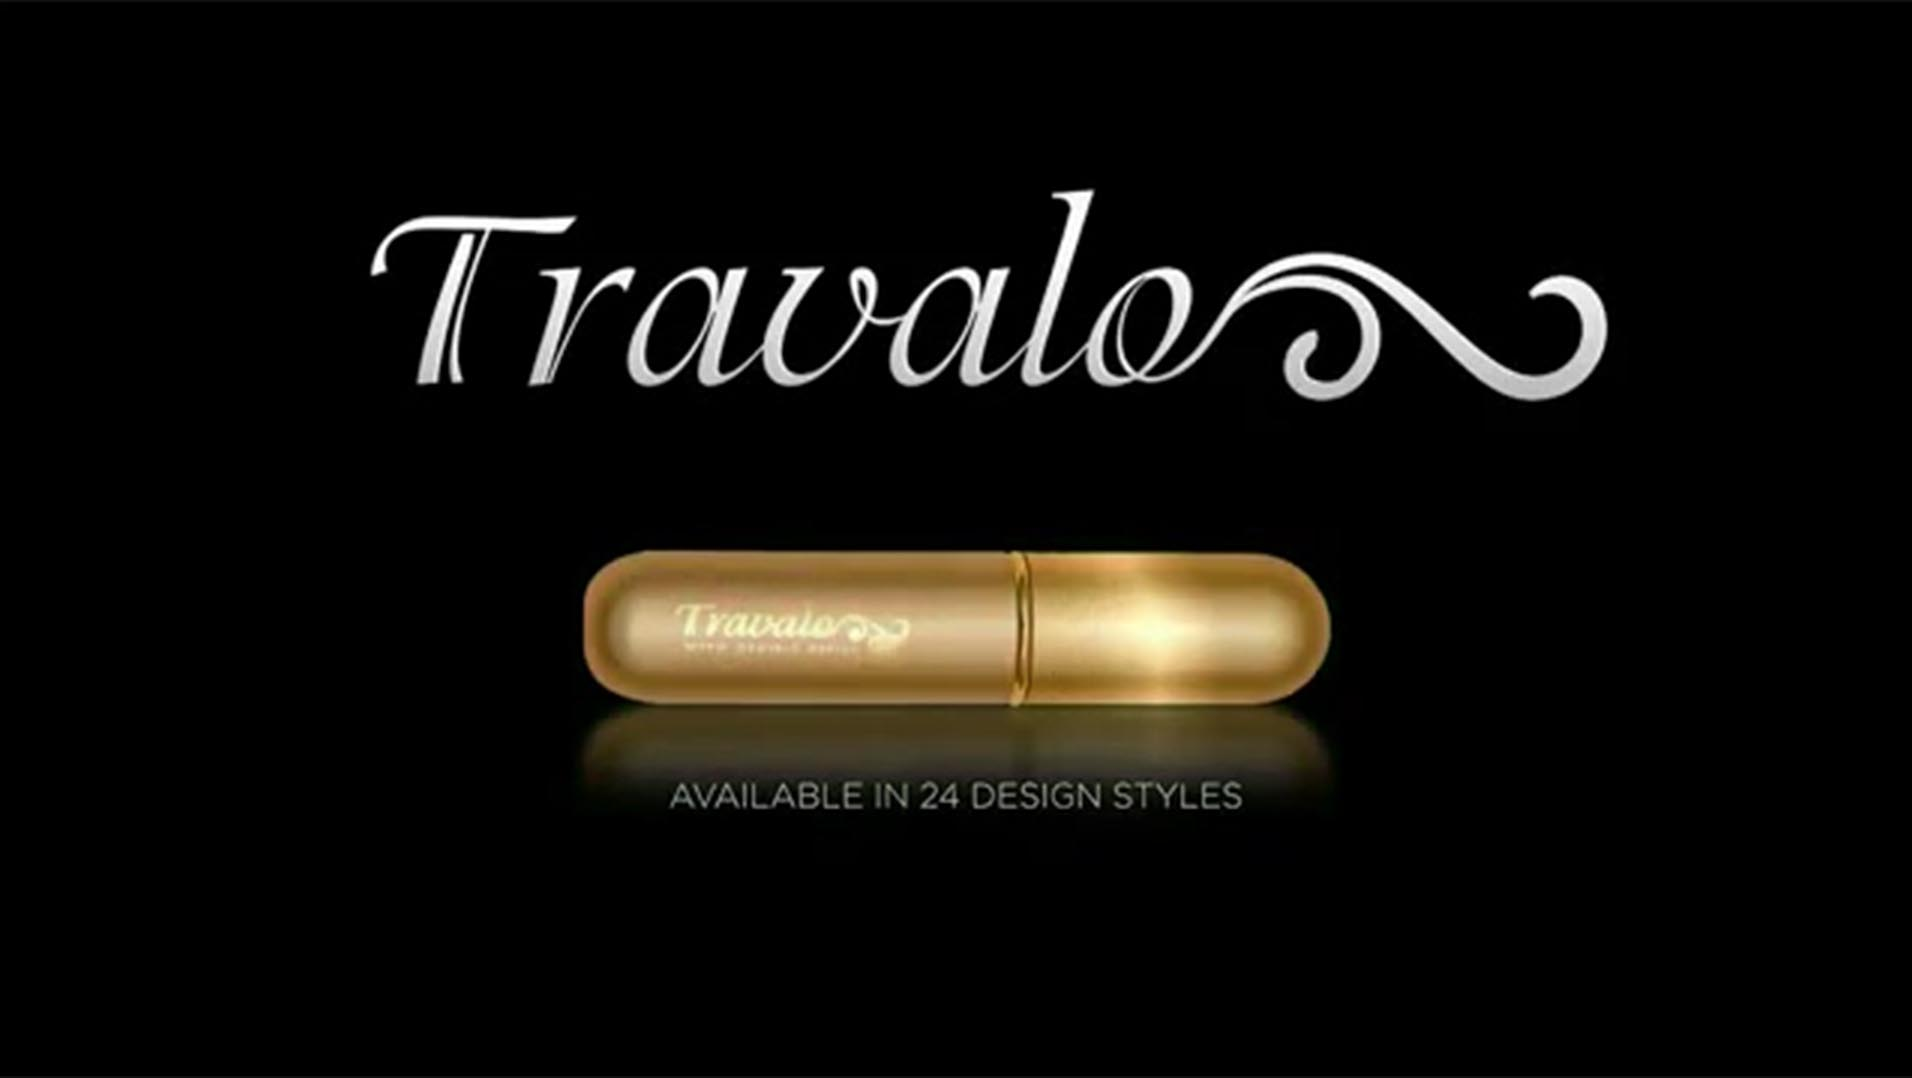 Travalo the ultimate perfume accessory.